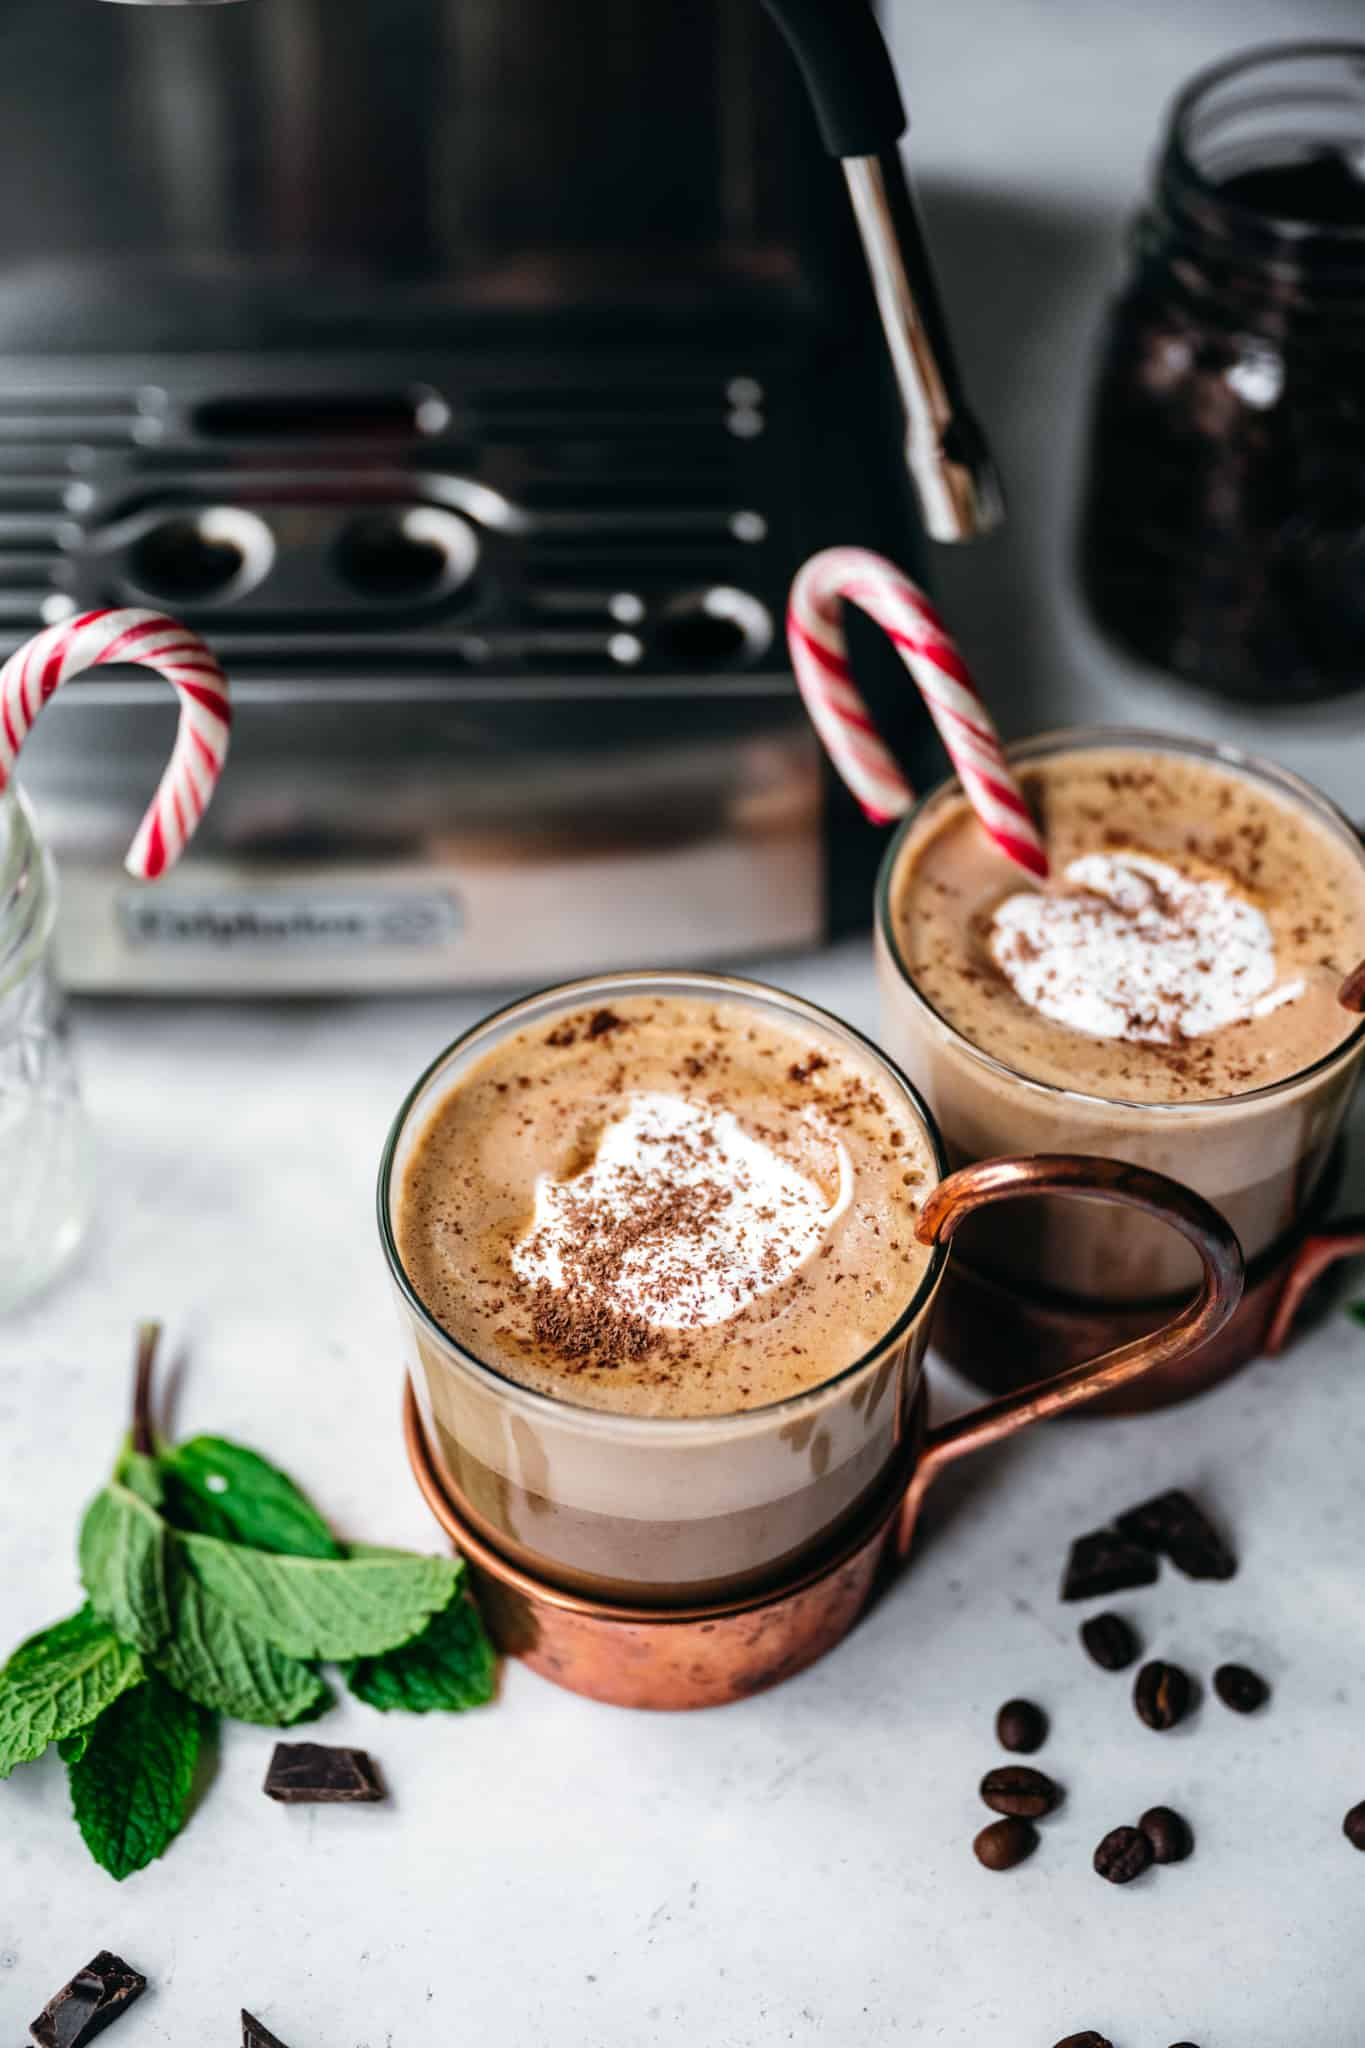 Vegan peppermint mochas topped with whipped cream